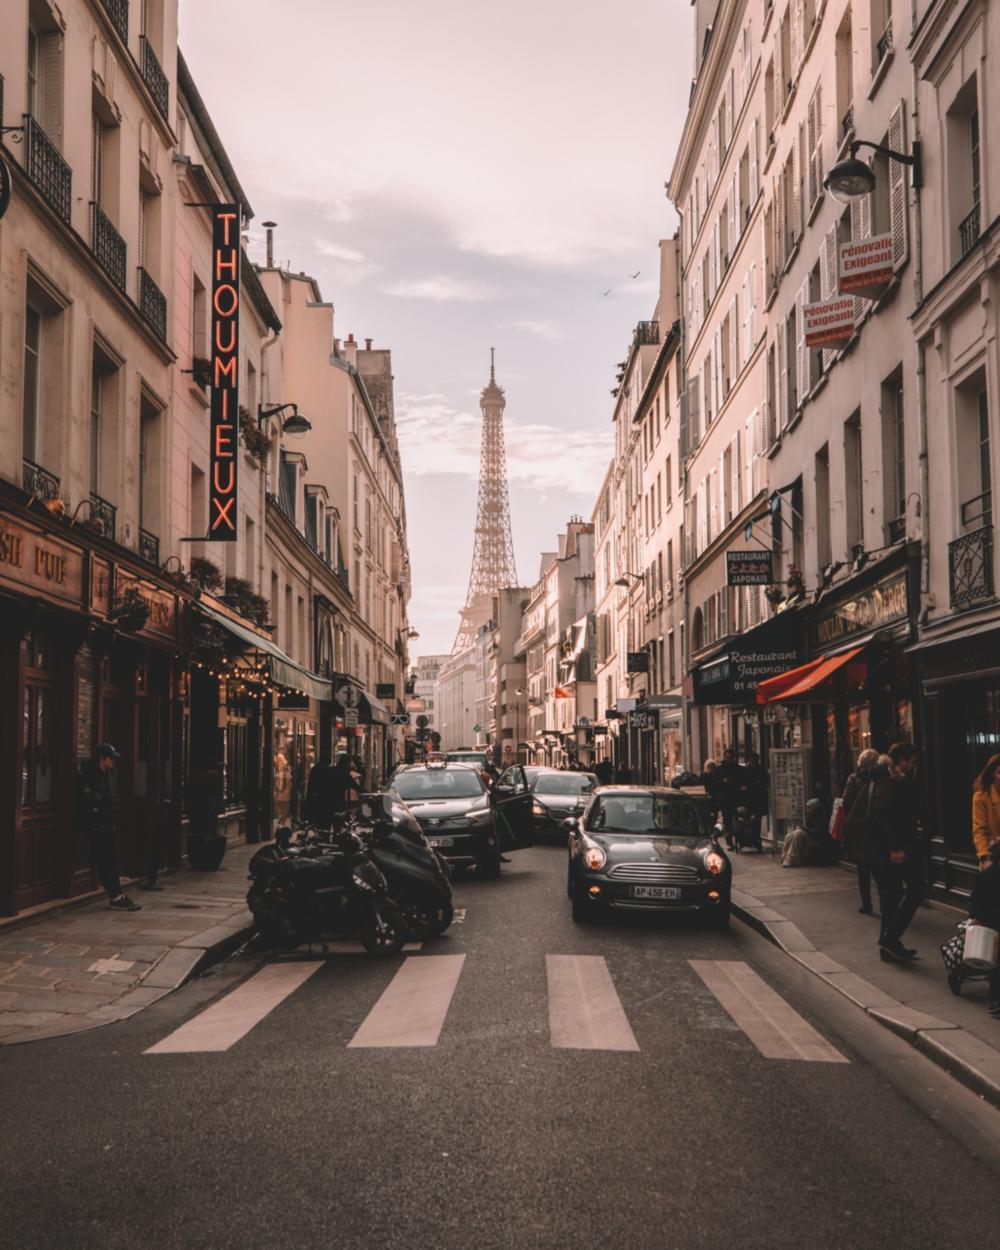 Planning your trip to Europe, Paris